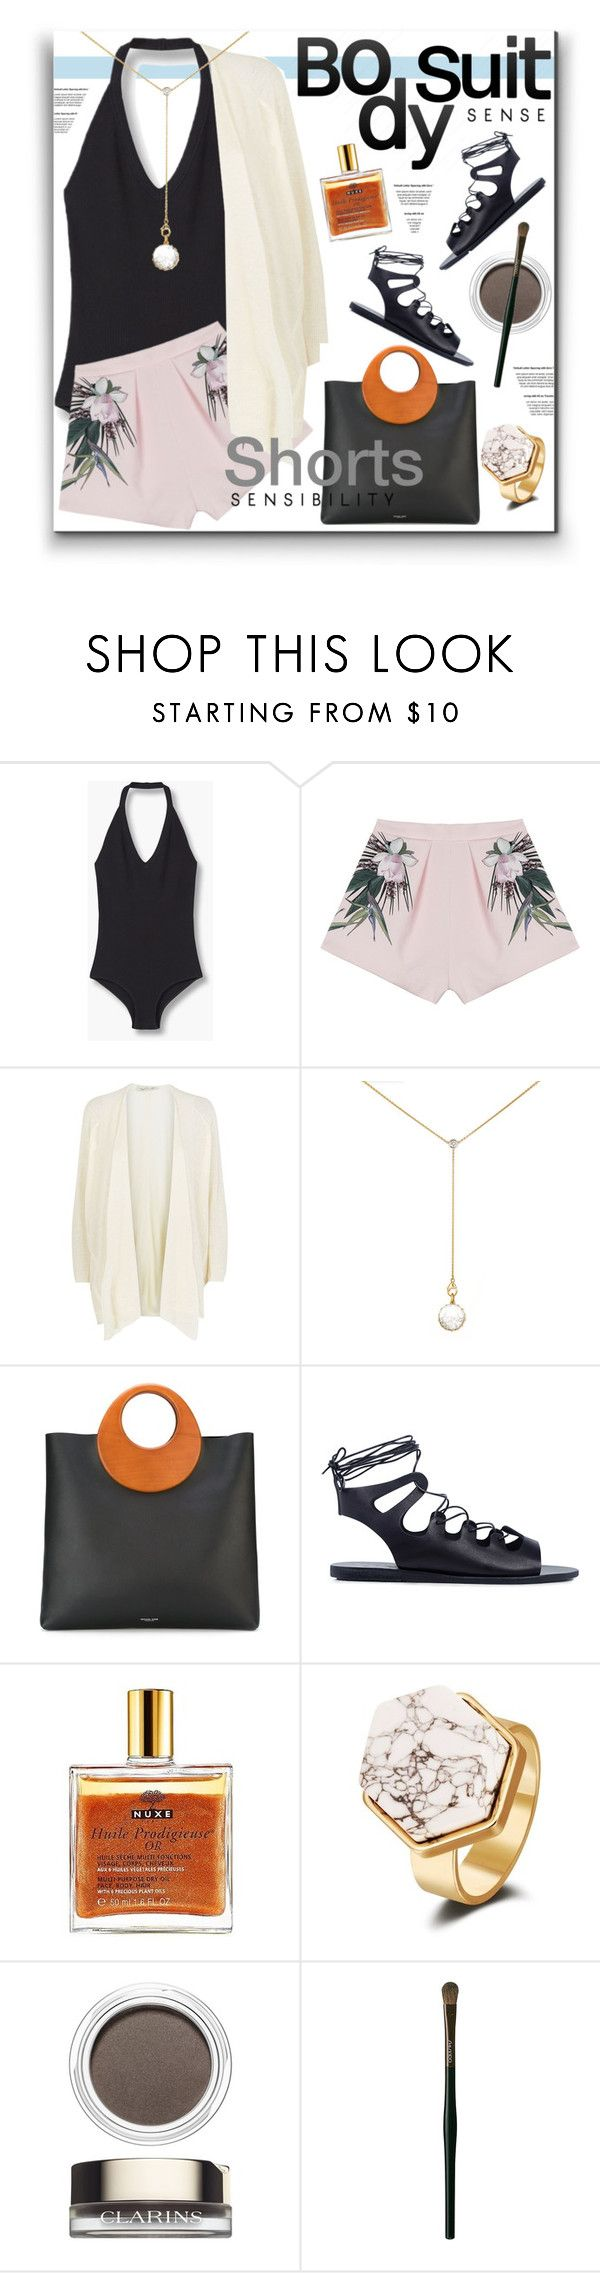 """Bodysuit"" by watereverysunday on Polyvore featuring MANGO, Style Stalker, Damsel in a Dress, Renee Lewis, Michael Kors, Ancient Greek Sandals, Nuxe, Clarins, Shiseido and shorts"